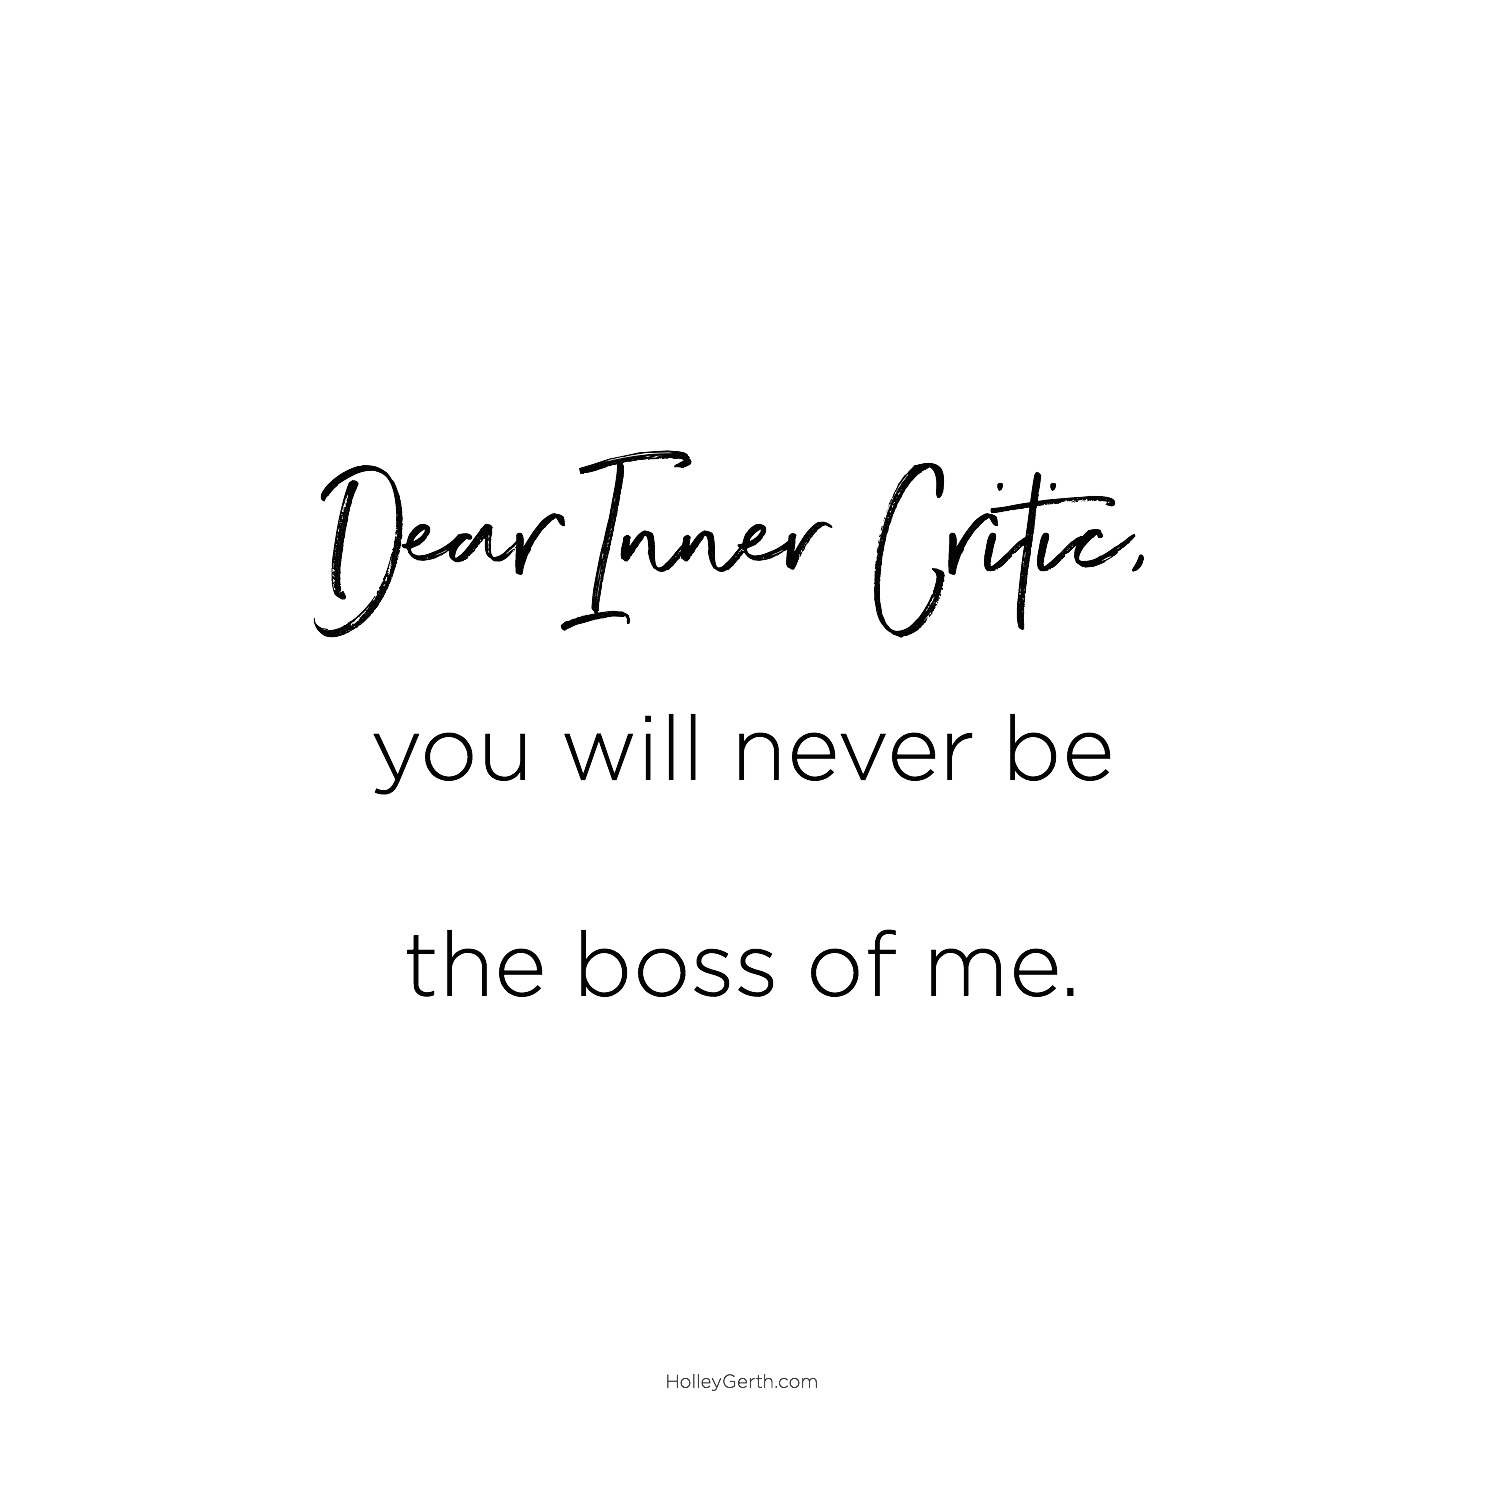 Dear Inner Critic, you will never be the boss of me